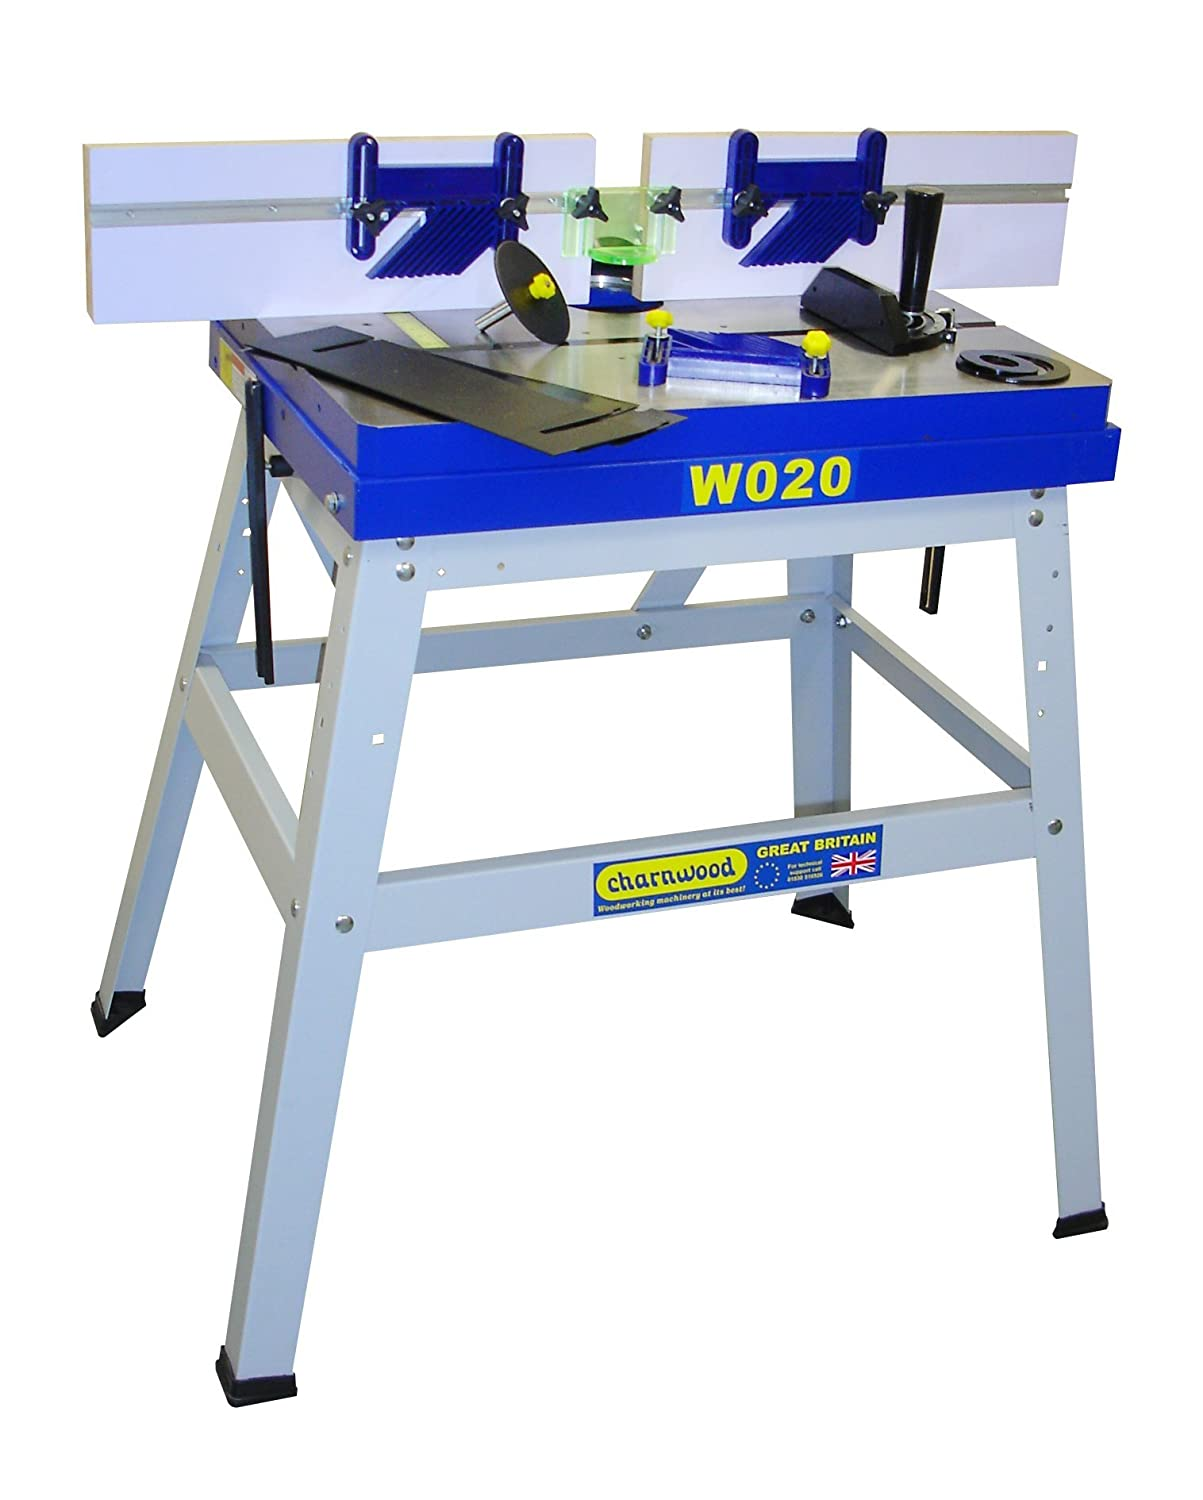 Charnwood w020 cast iron floorstanding router table amazon charnwood w020 cast iron floorstanding router table amazon diy tools greentooth Images